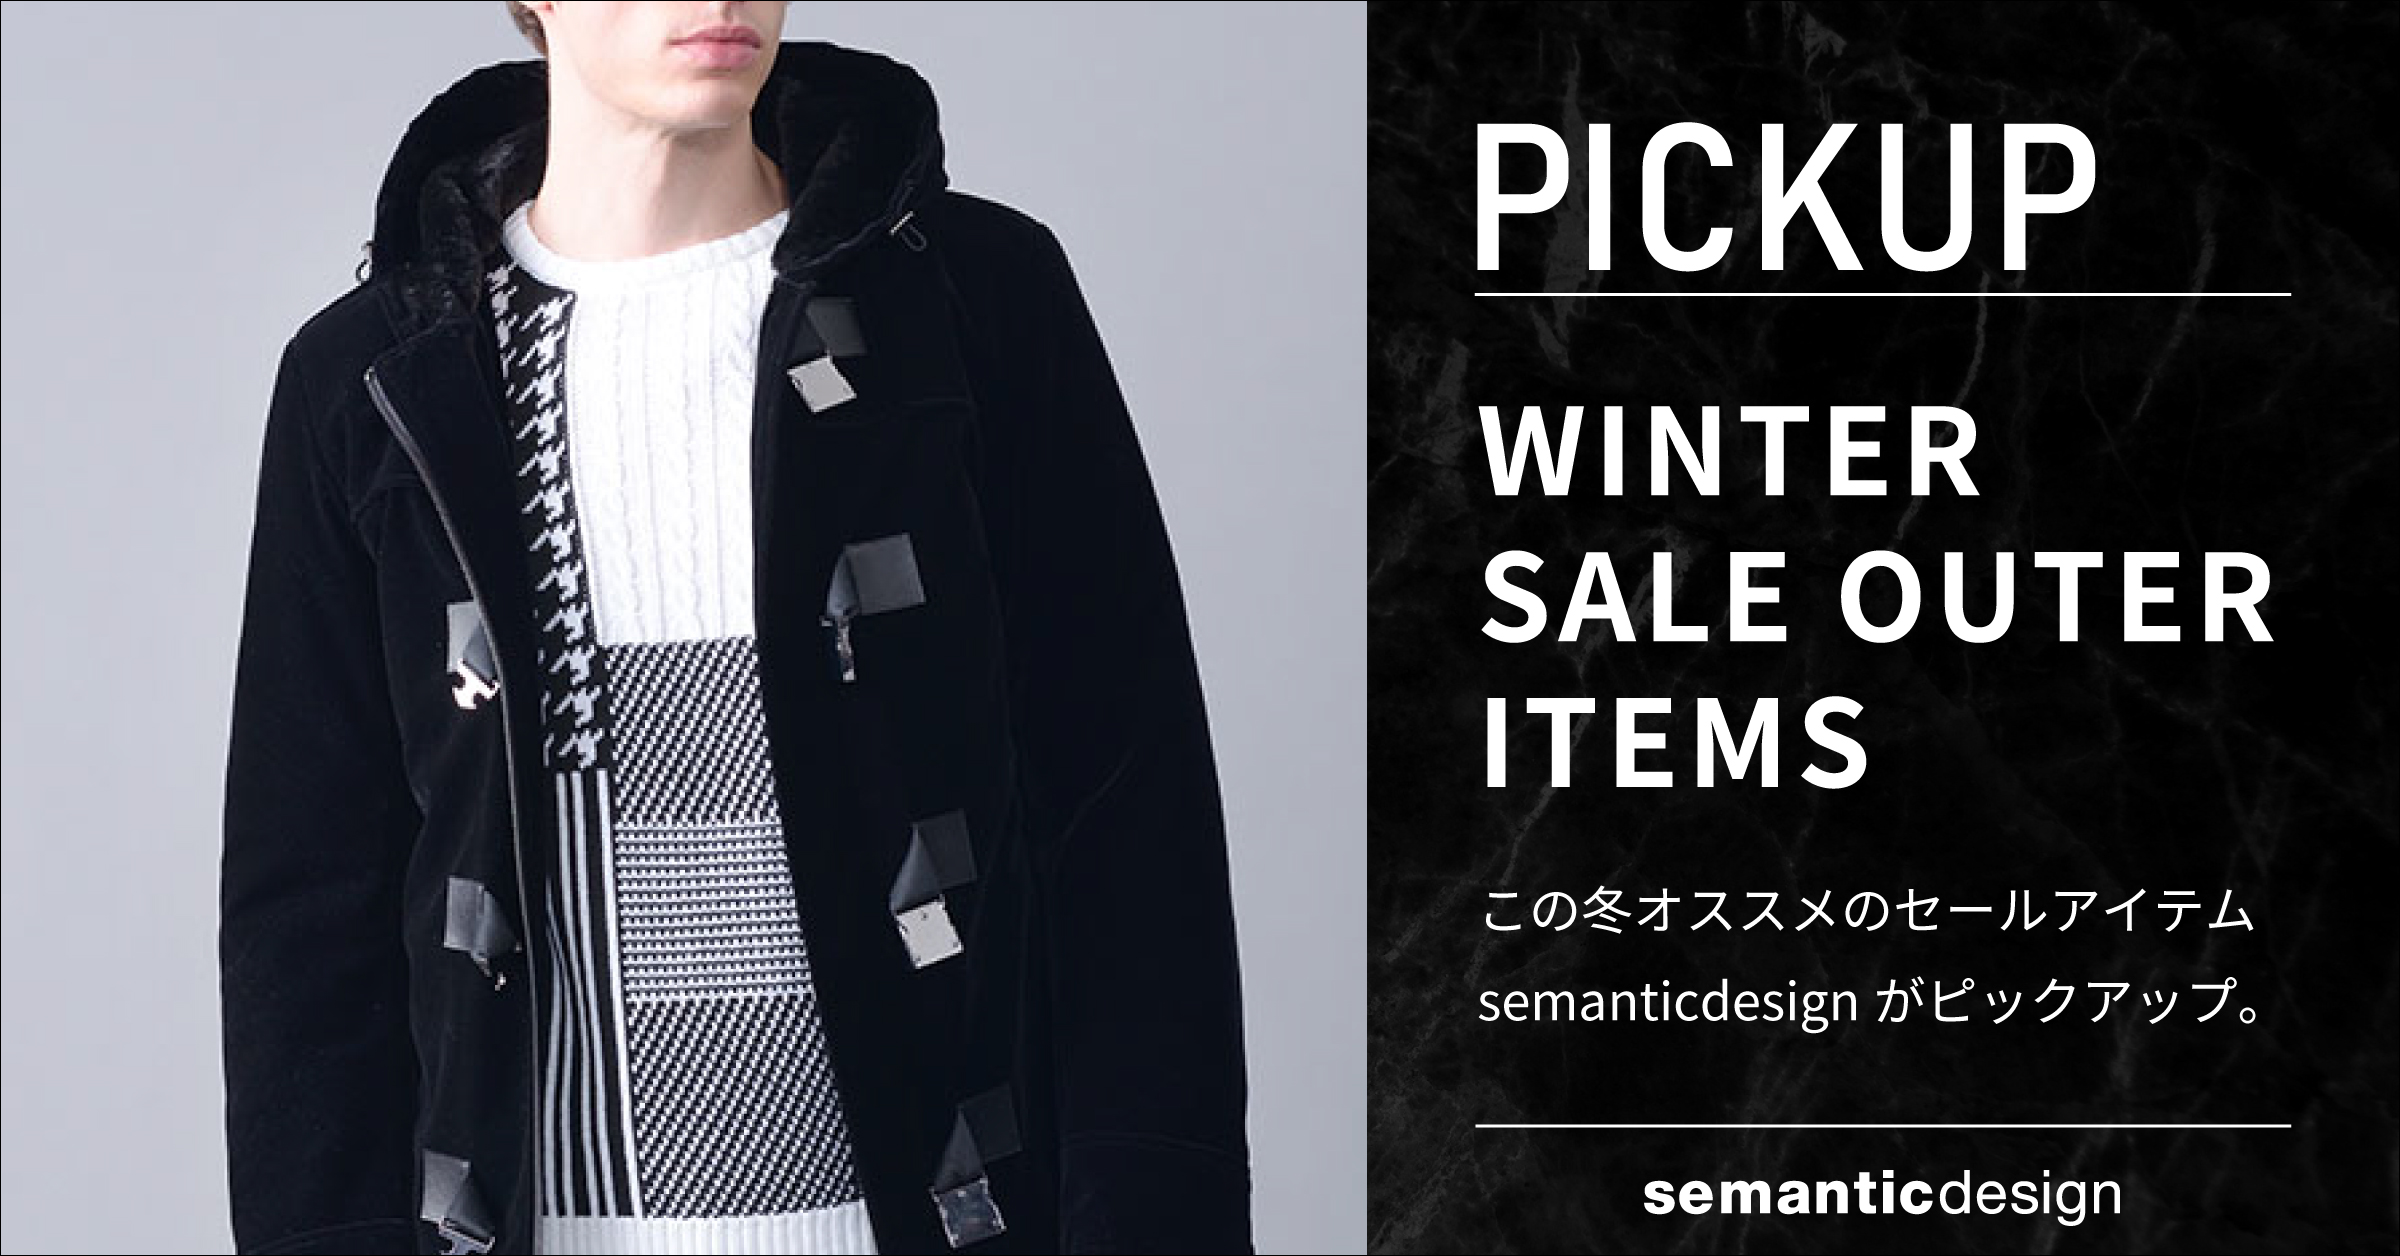 semanticdesign PICK UP WINTER SALE OUTER ITEMS